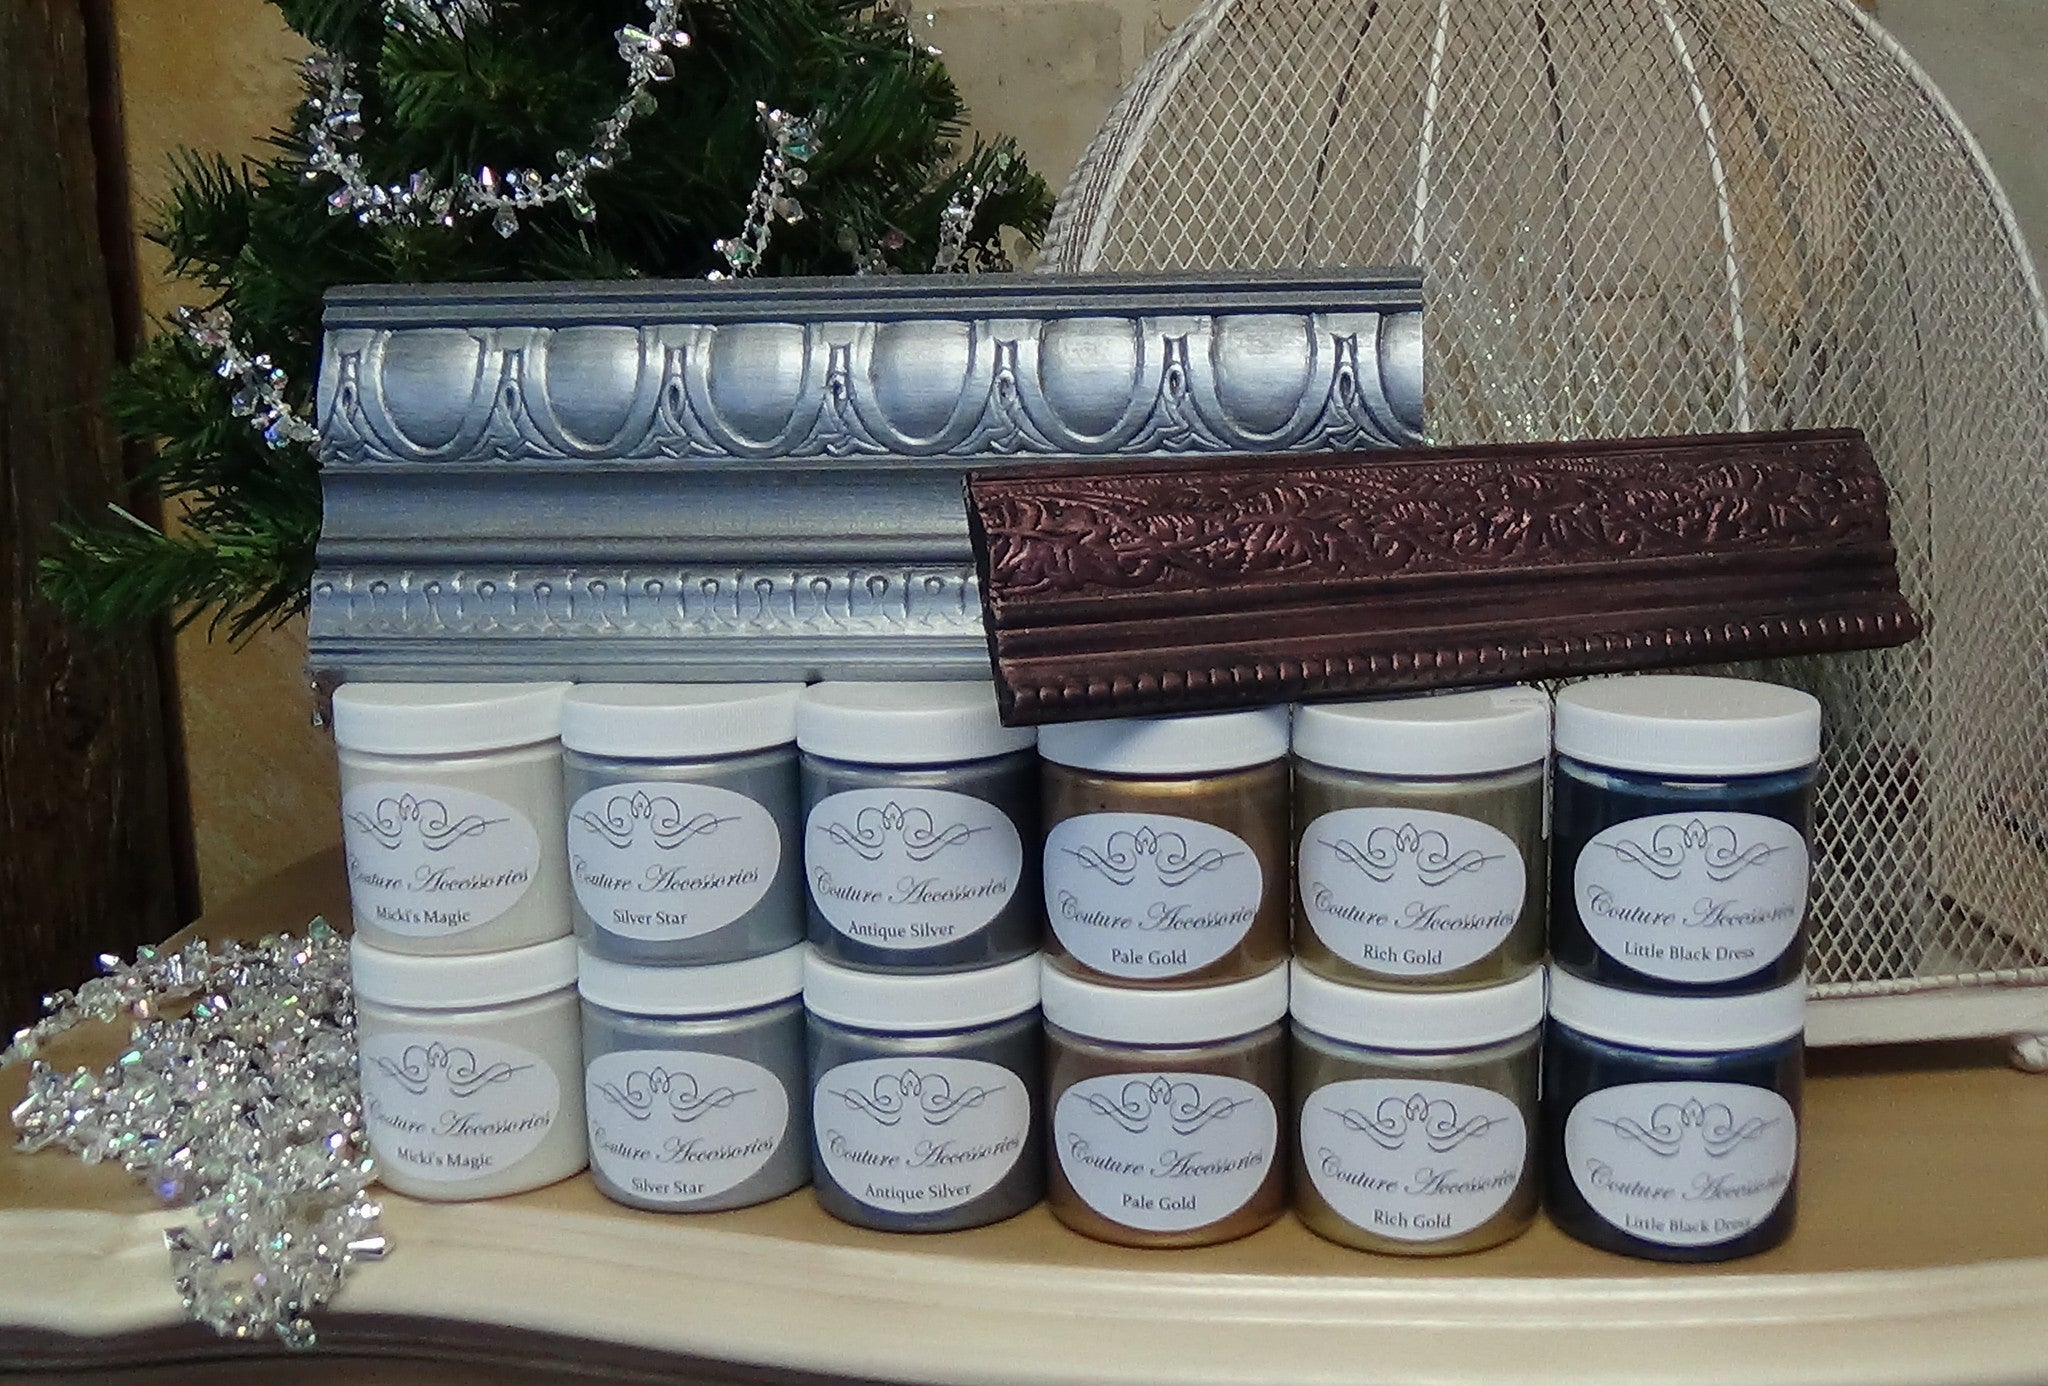 A great sampler collection of metallic paints by Paint Couture™